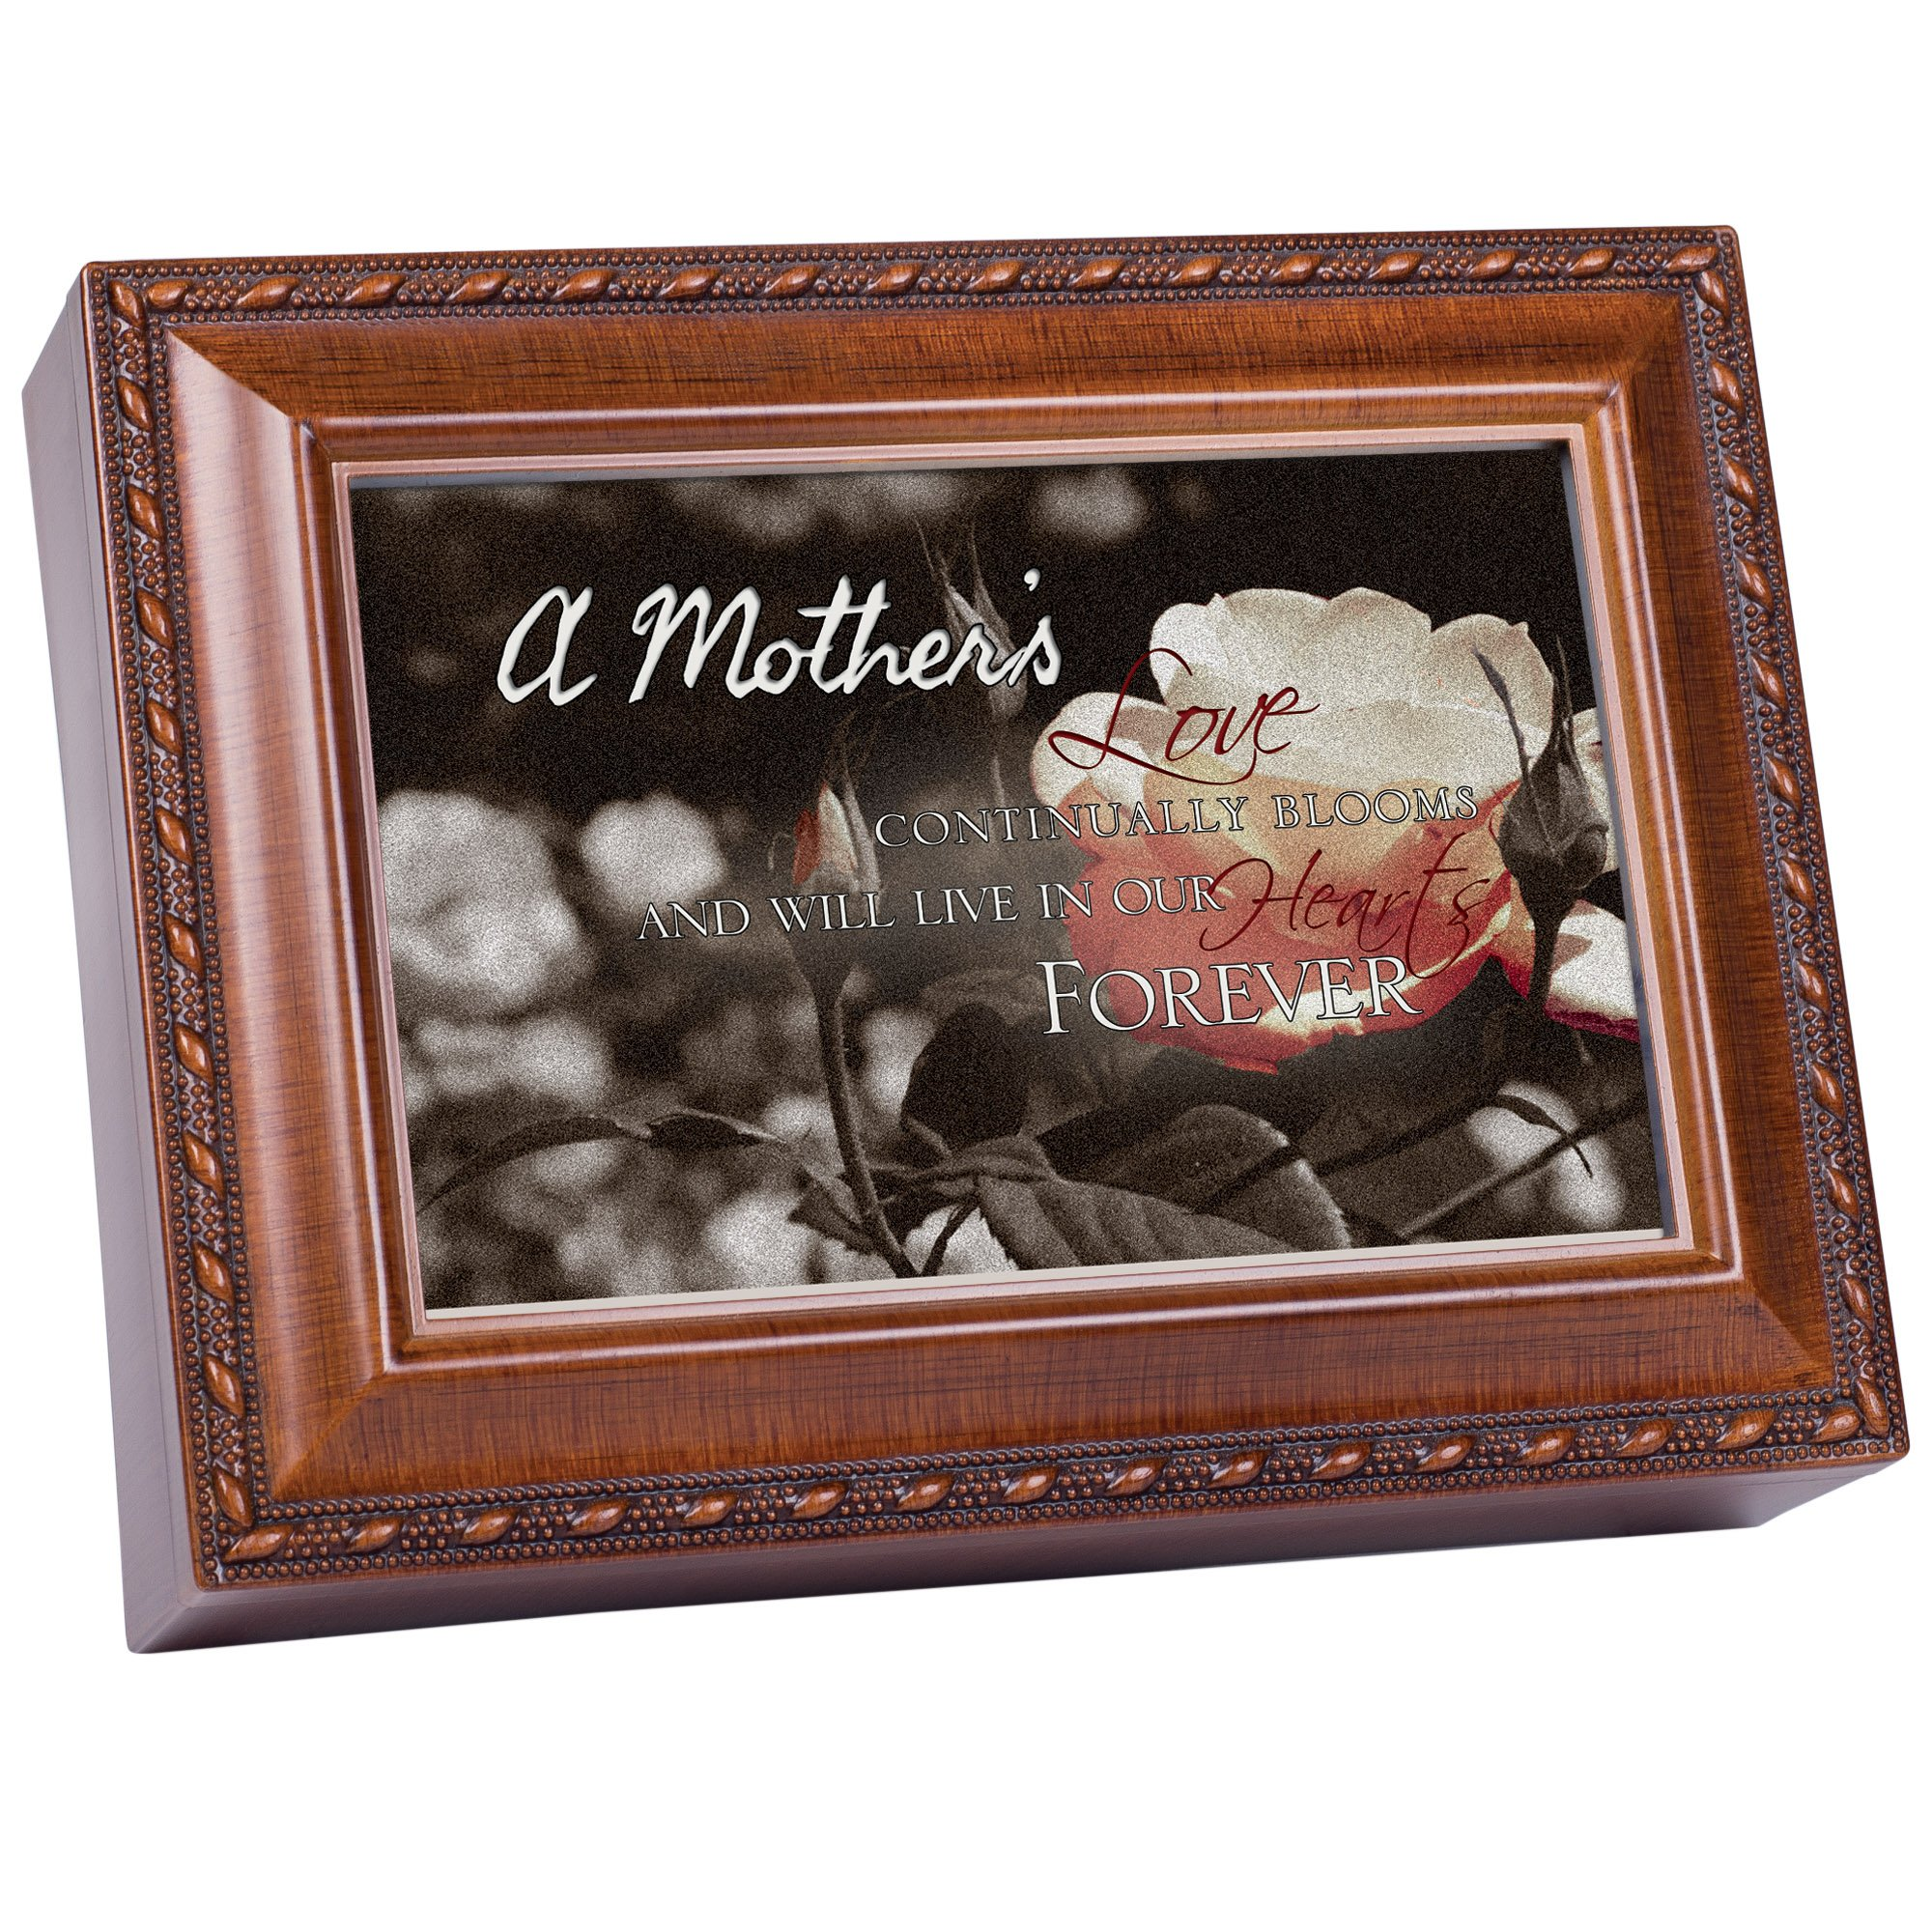 A Mother's Love Bereavement Memory Cottage Garden Rich Woodgrain Finish Jewelry Music Box - Plays Song Amazing Grace